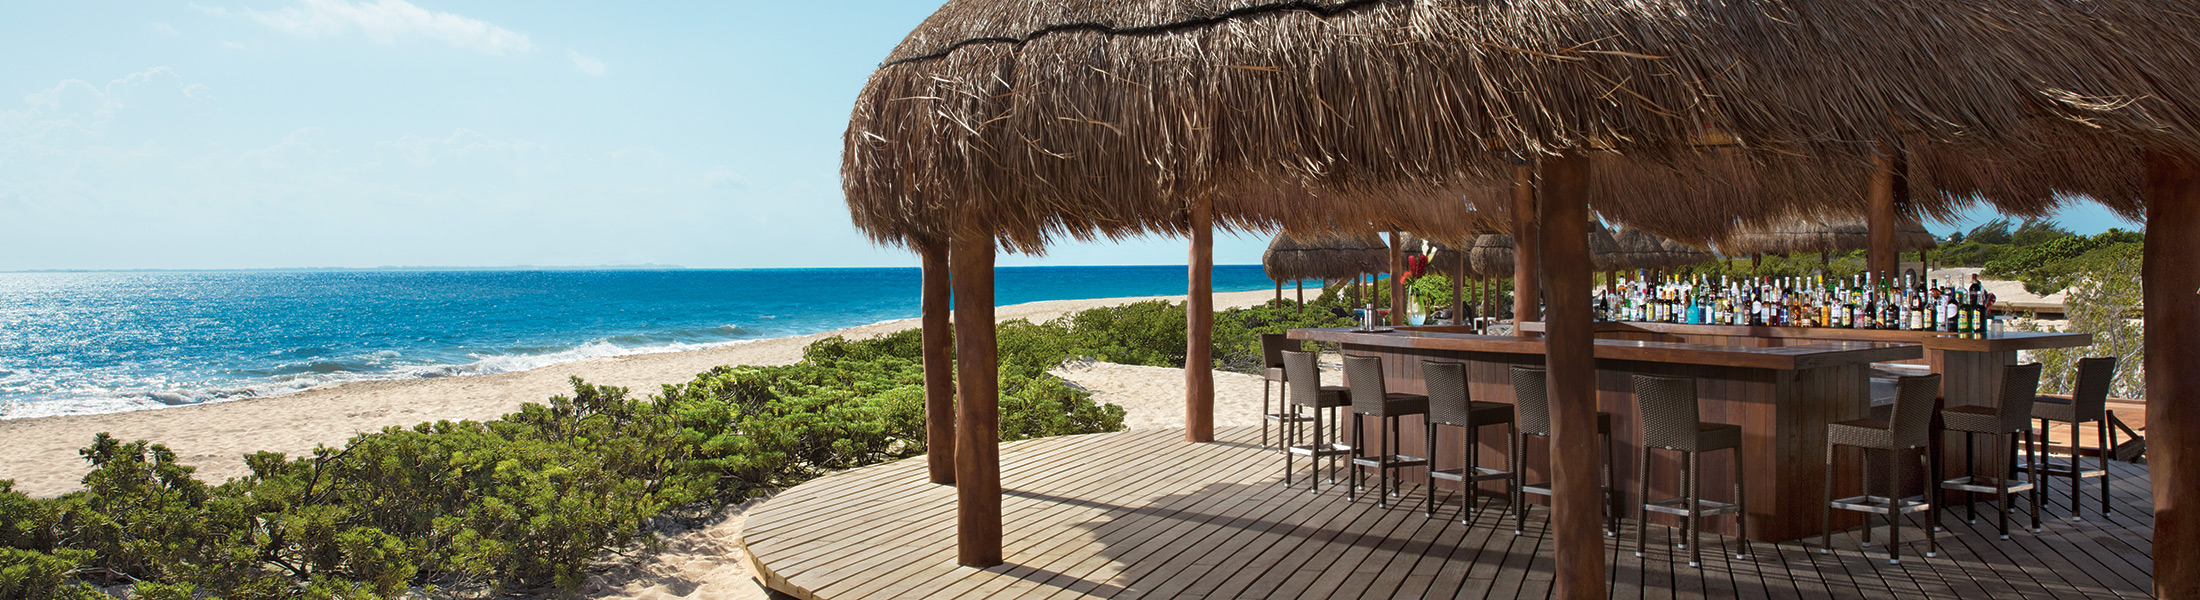 Beach Bar at Dreams Playa Mujeres